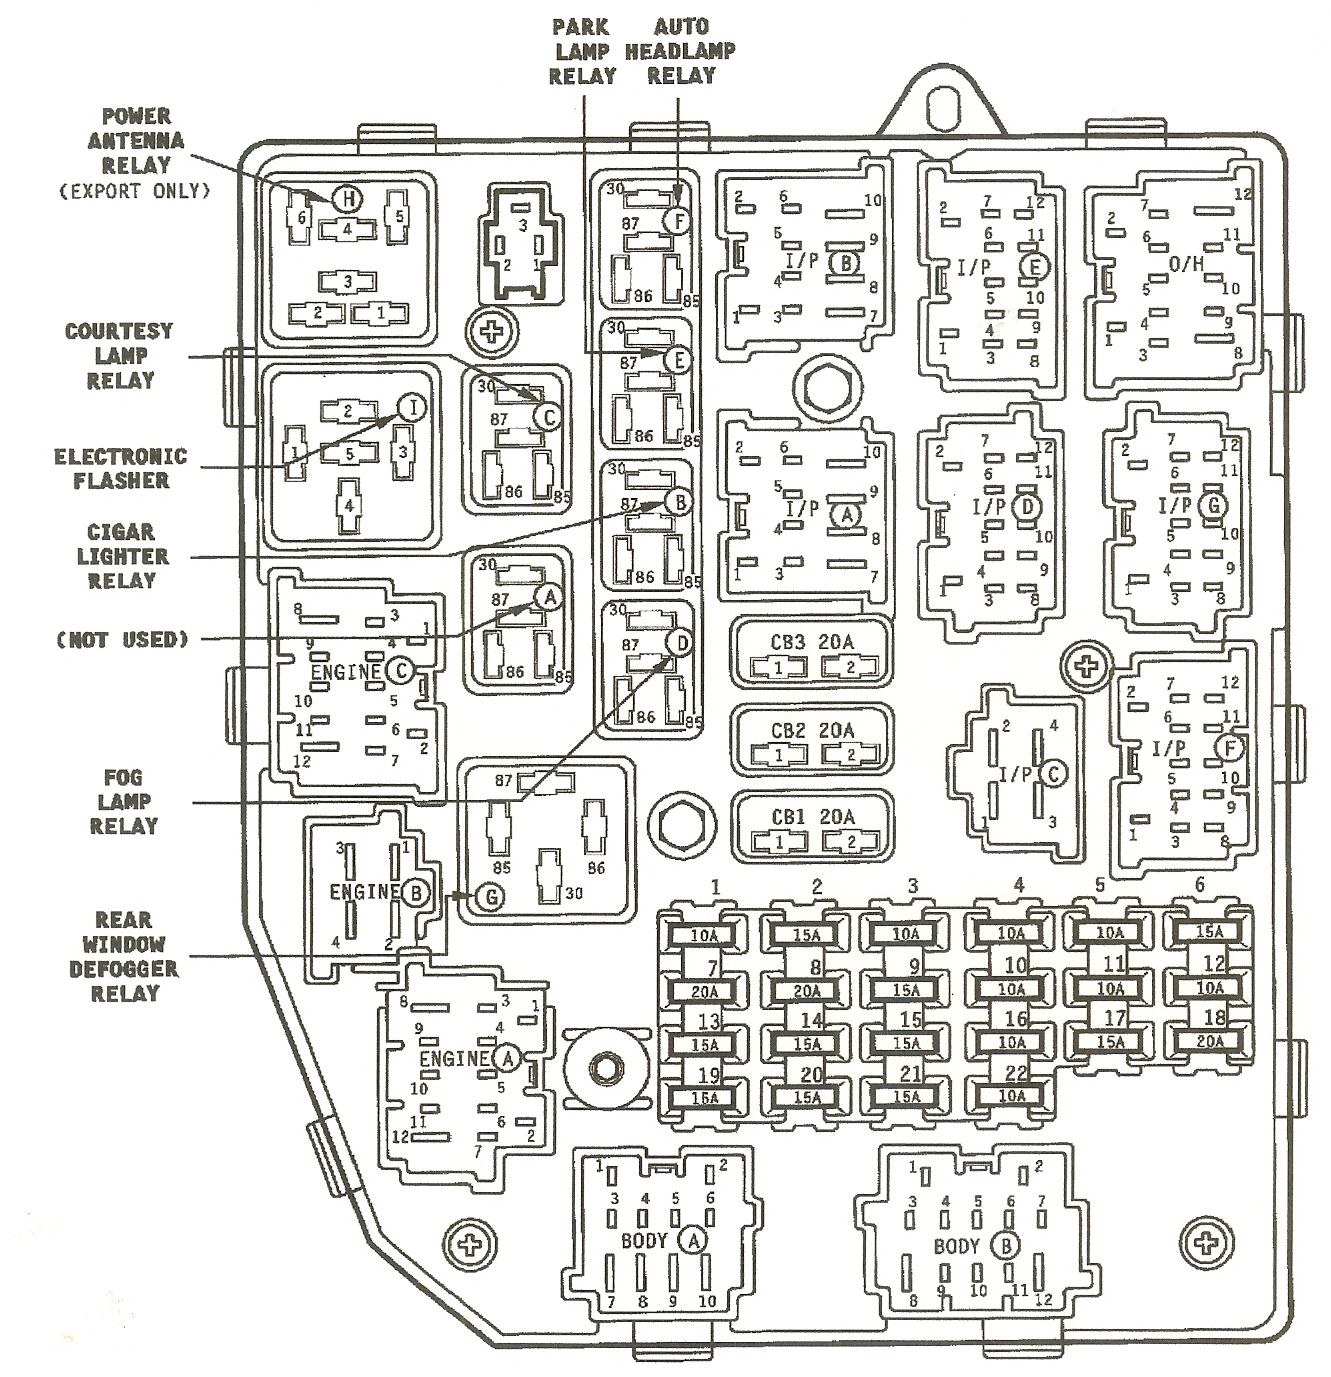 1996 Jeep Grand Cherokee Fuse Box Diagram Am